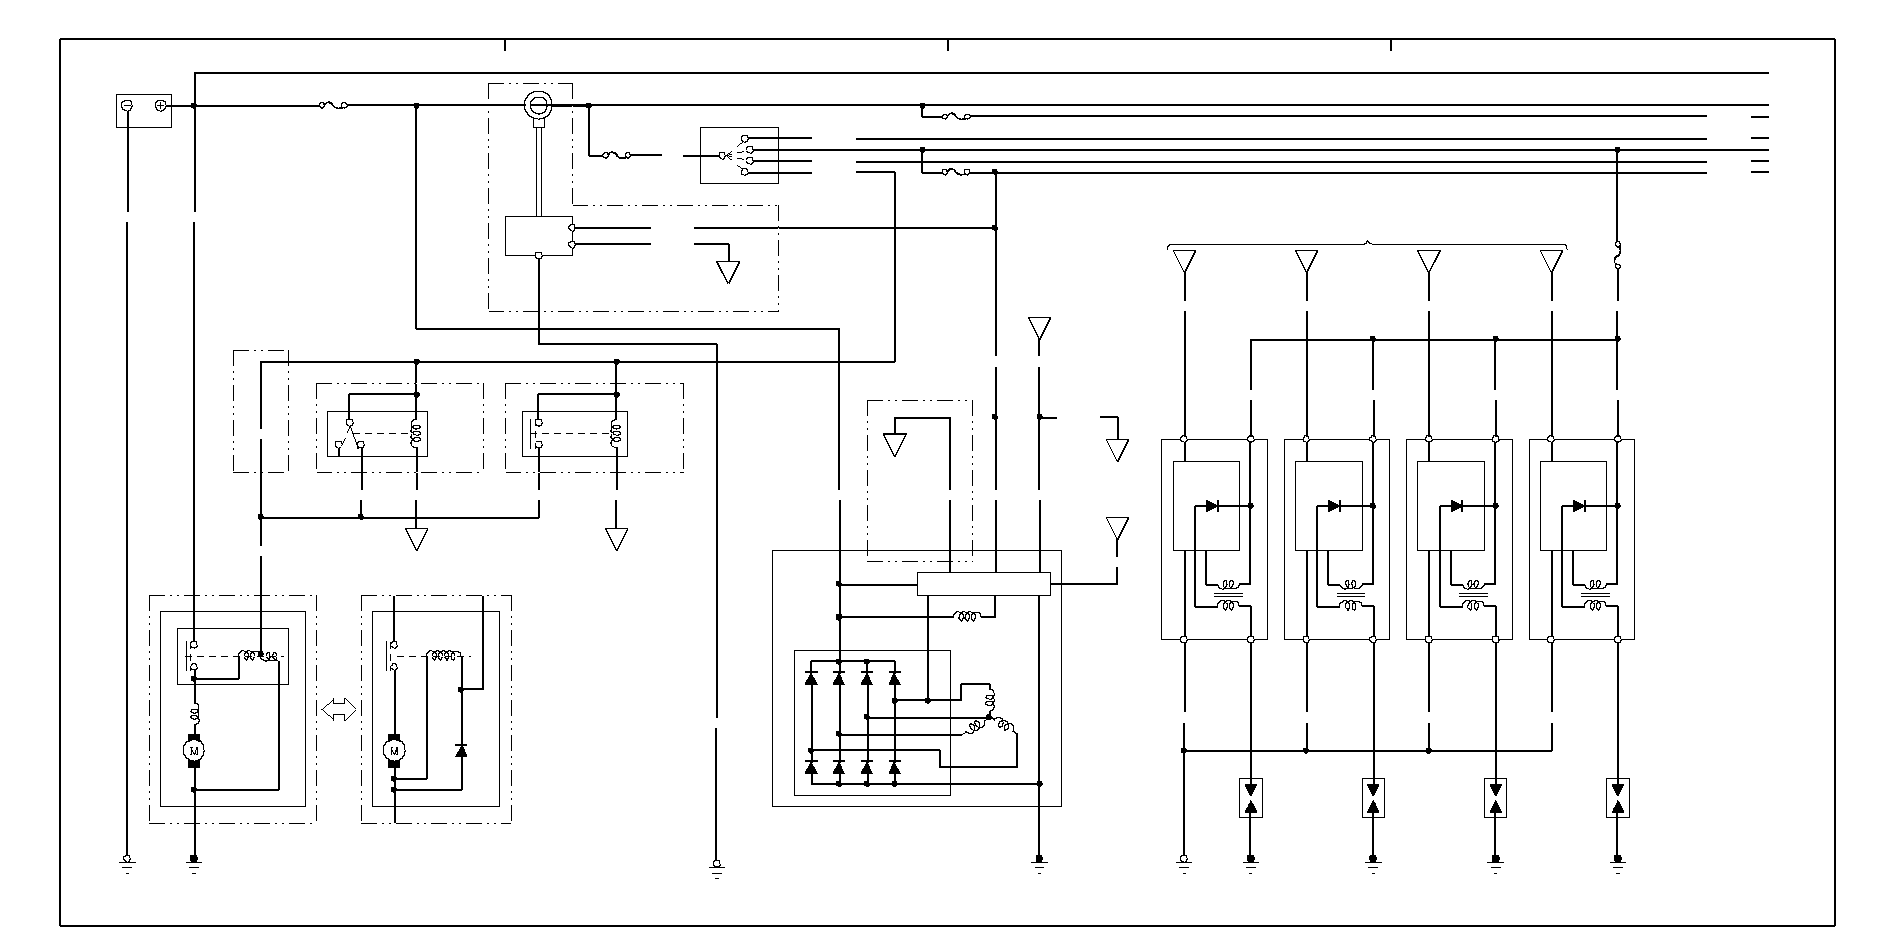 cr wiring diagram   17 wiring diagram images